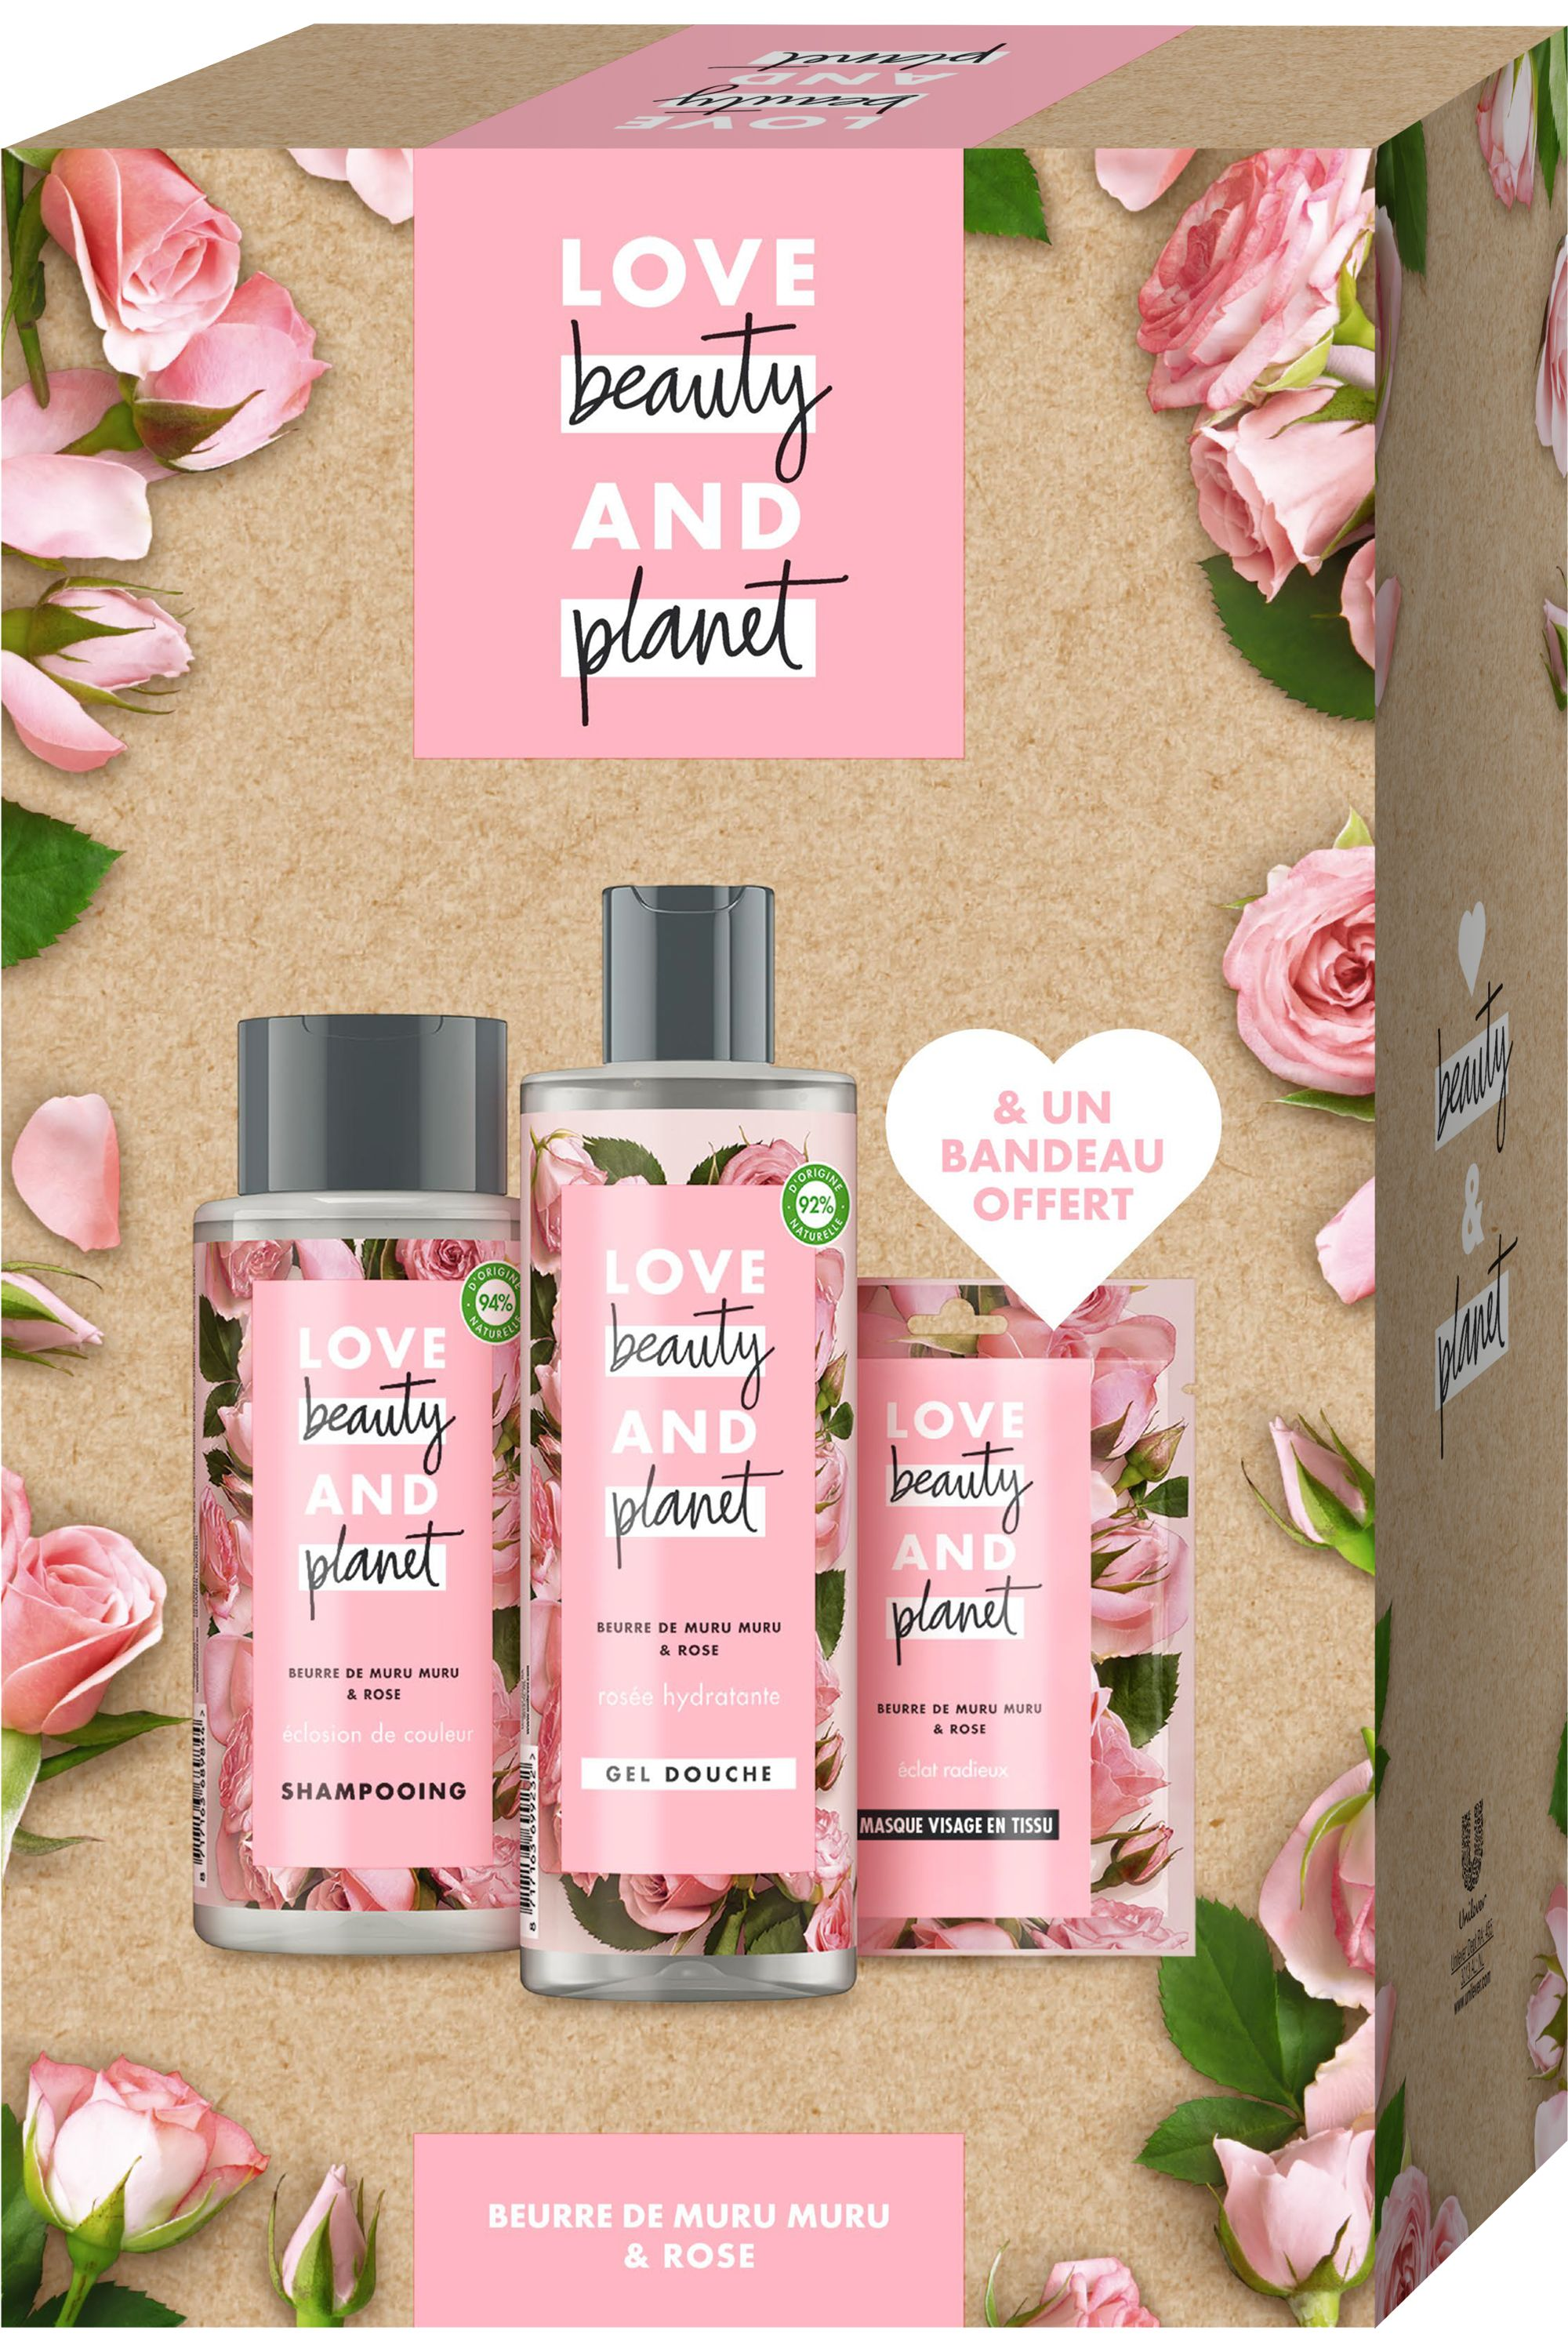 Blissim : Love Beauty and Planet - Coffret Éclosion de couleur - Coffret Éclosion de couleur